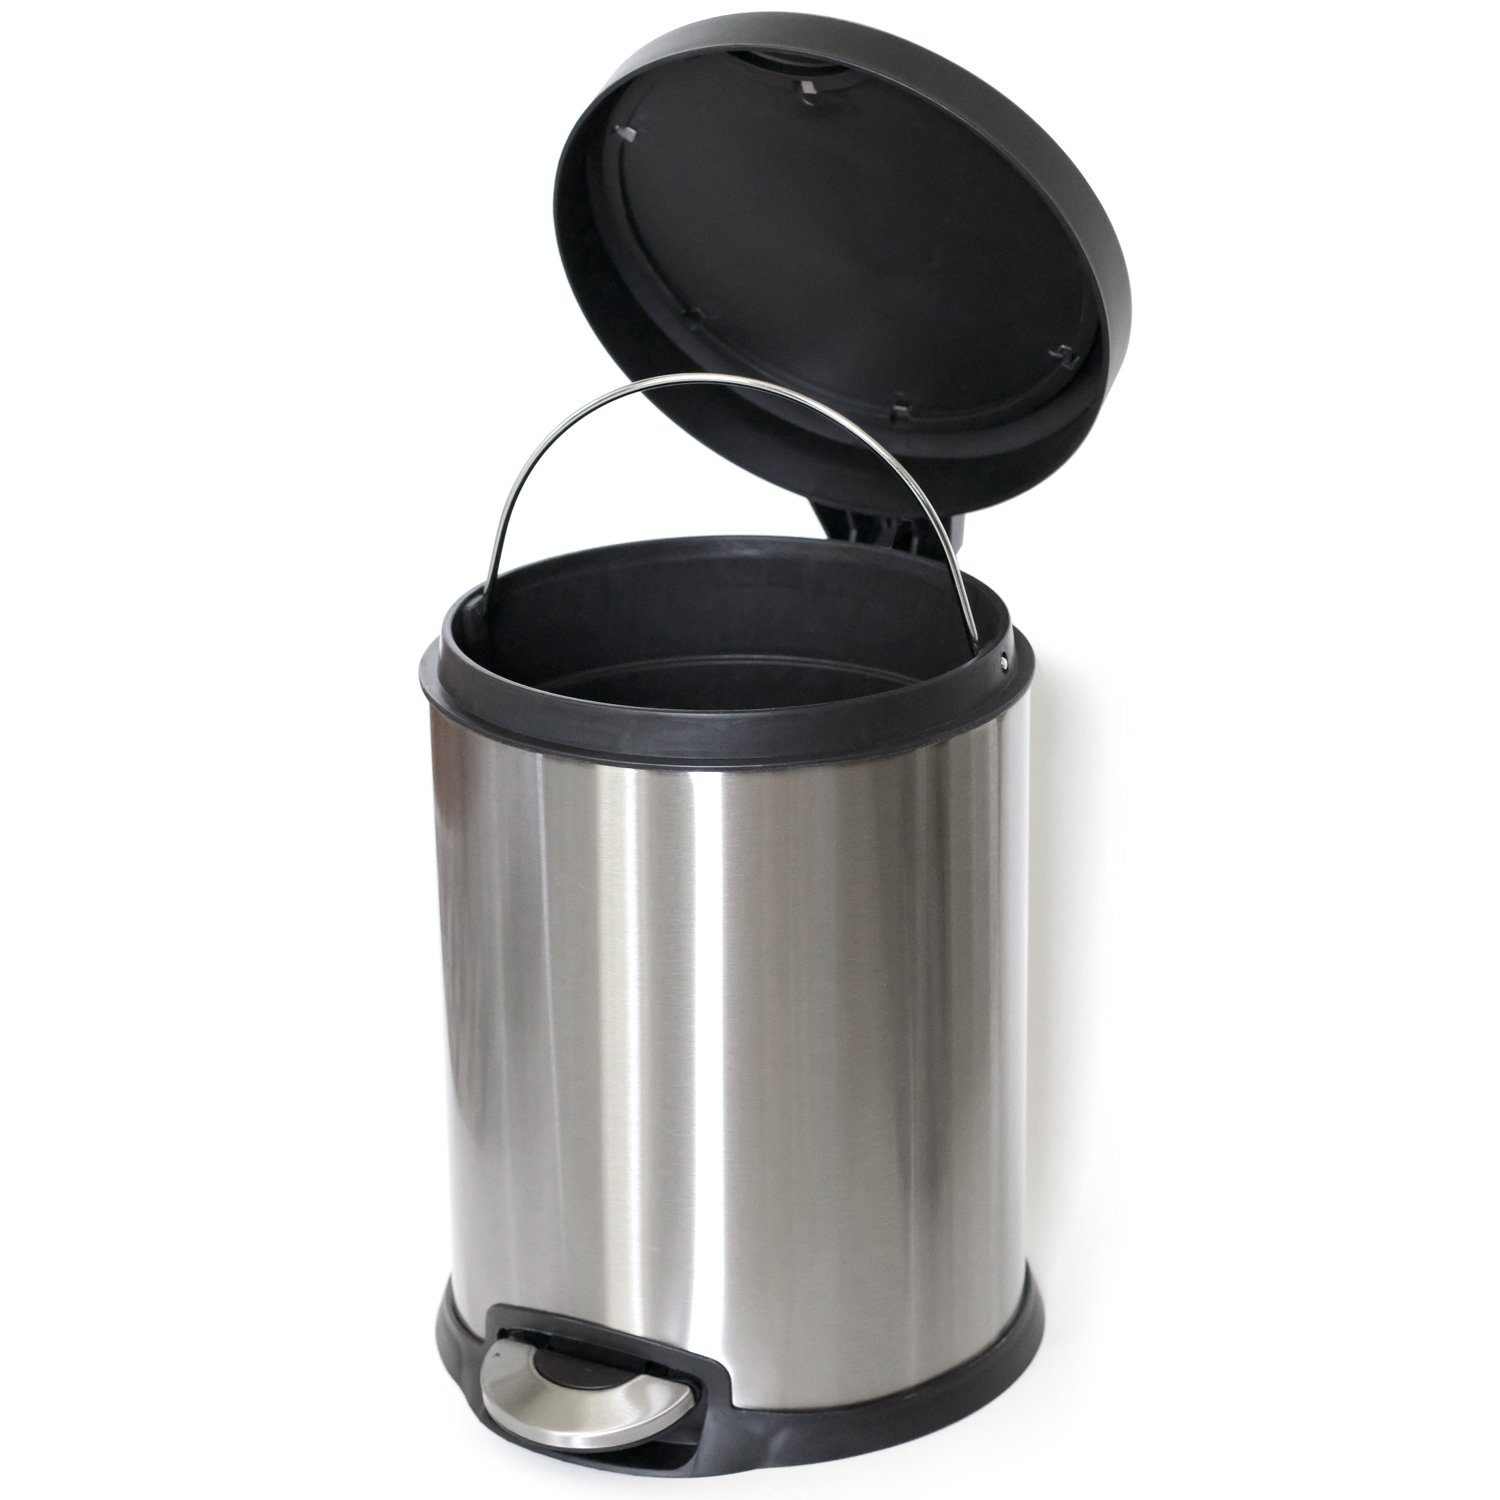 ToiletTree Products Stainless Steel Trash Can, 5 Liter by ToiletTree Products (Image #2)